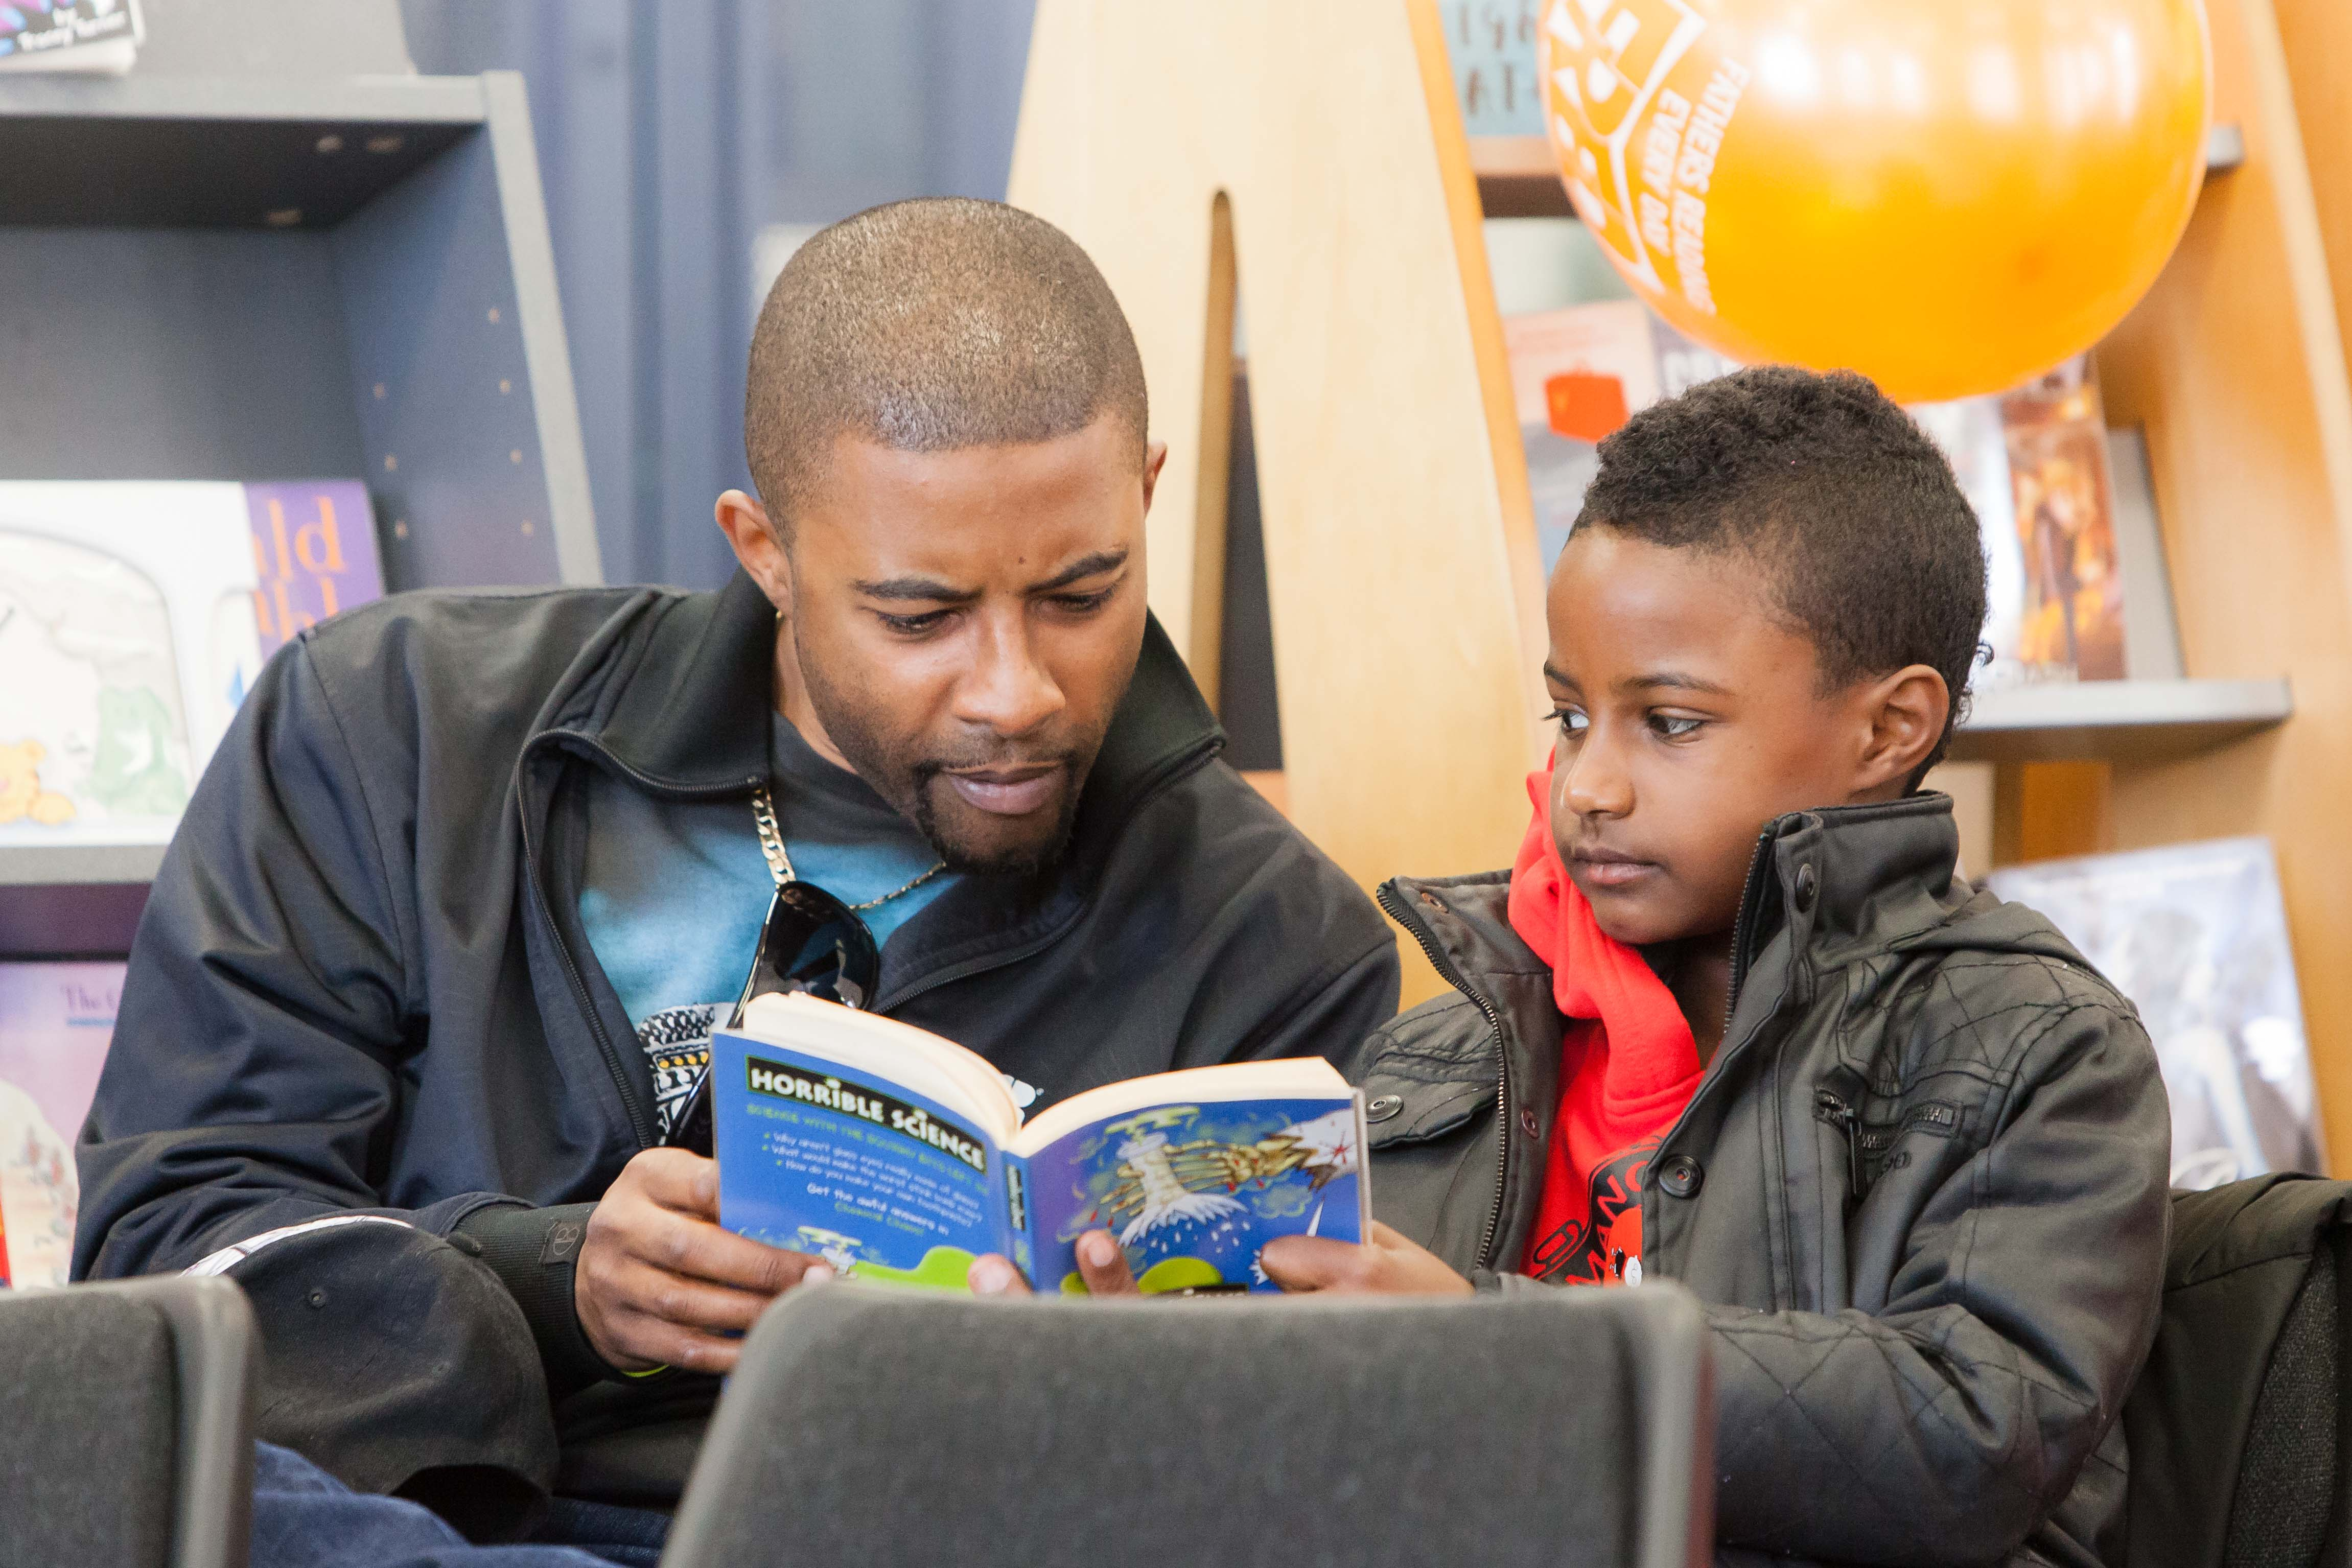 Fathers Reading Every Day Training The Fatherhood Institute